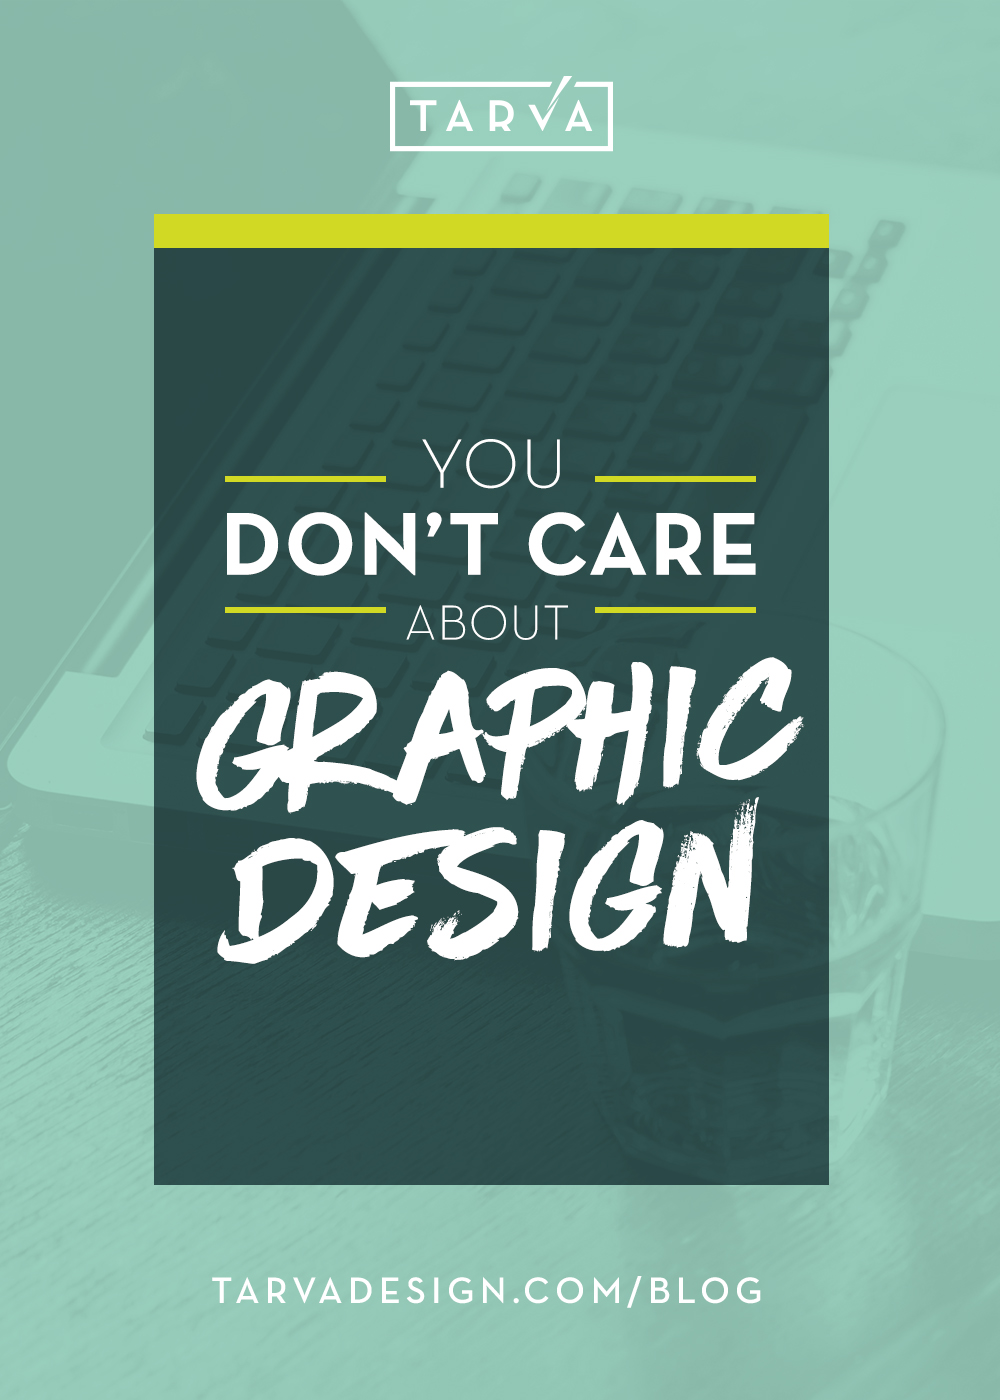 Tarva+Design+Studio_You+Dont+Care+About+graphic+Design_Blog+Post.jpg